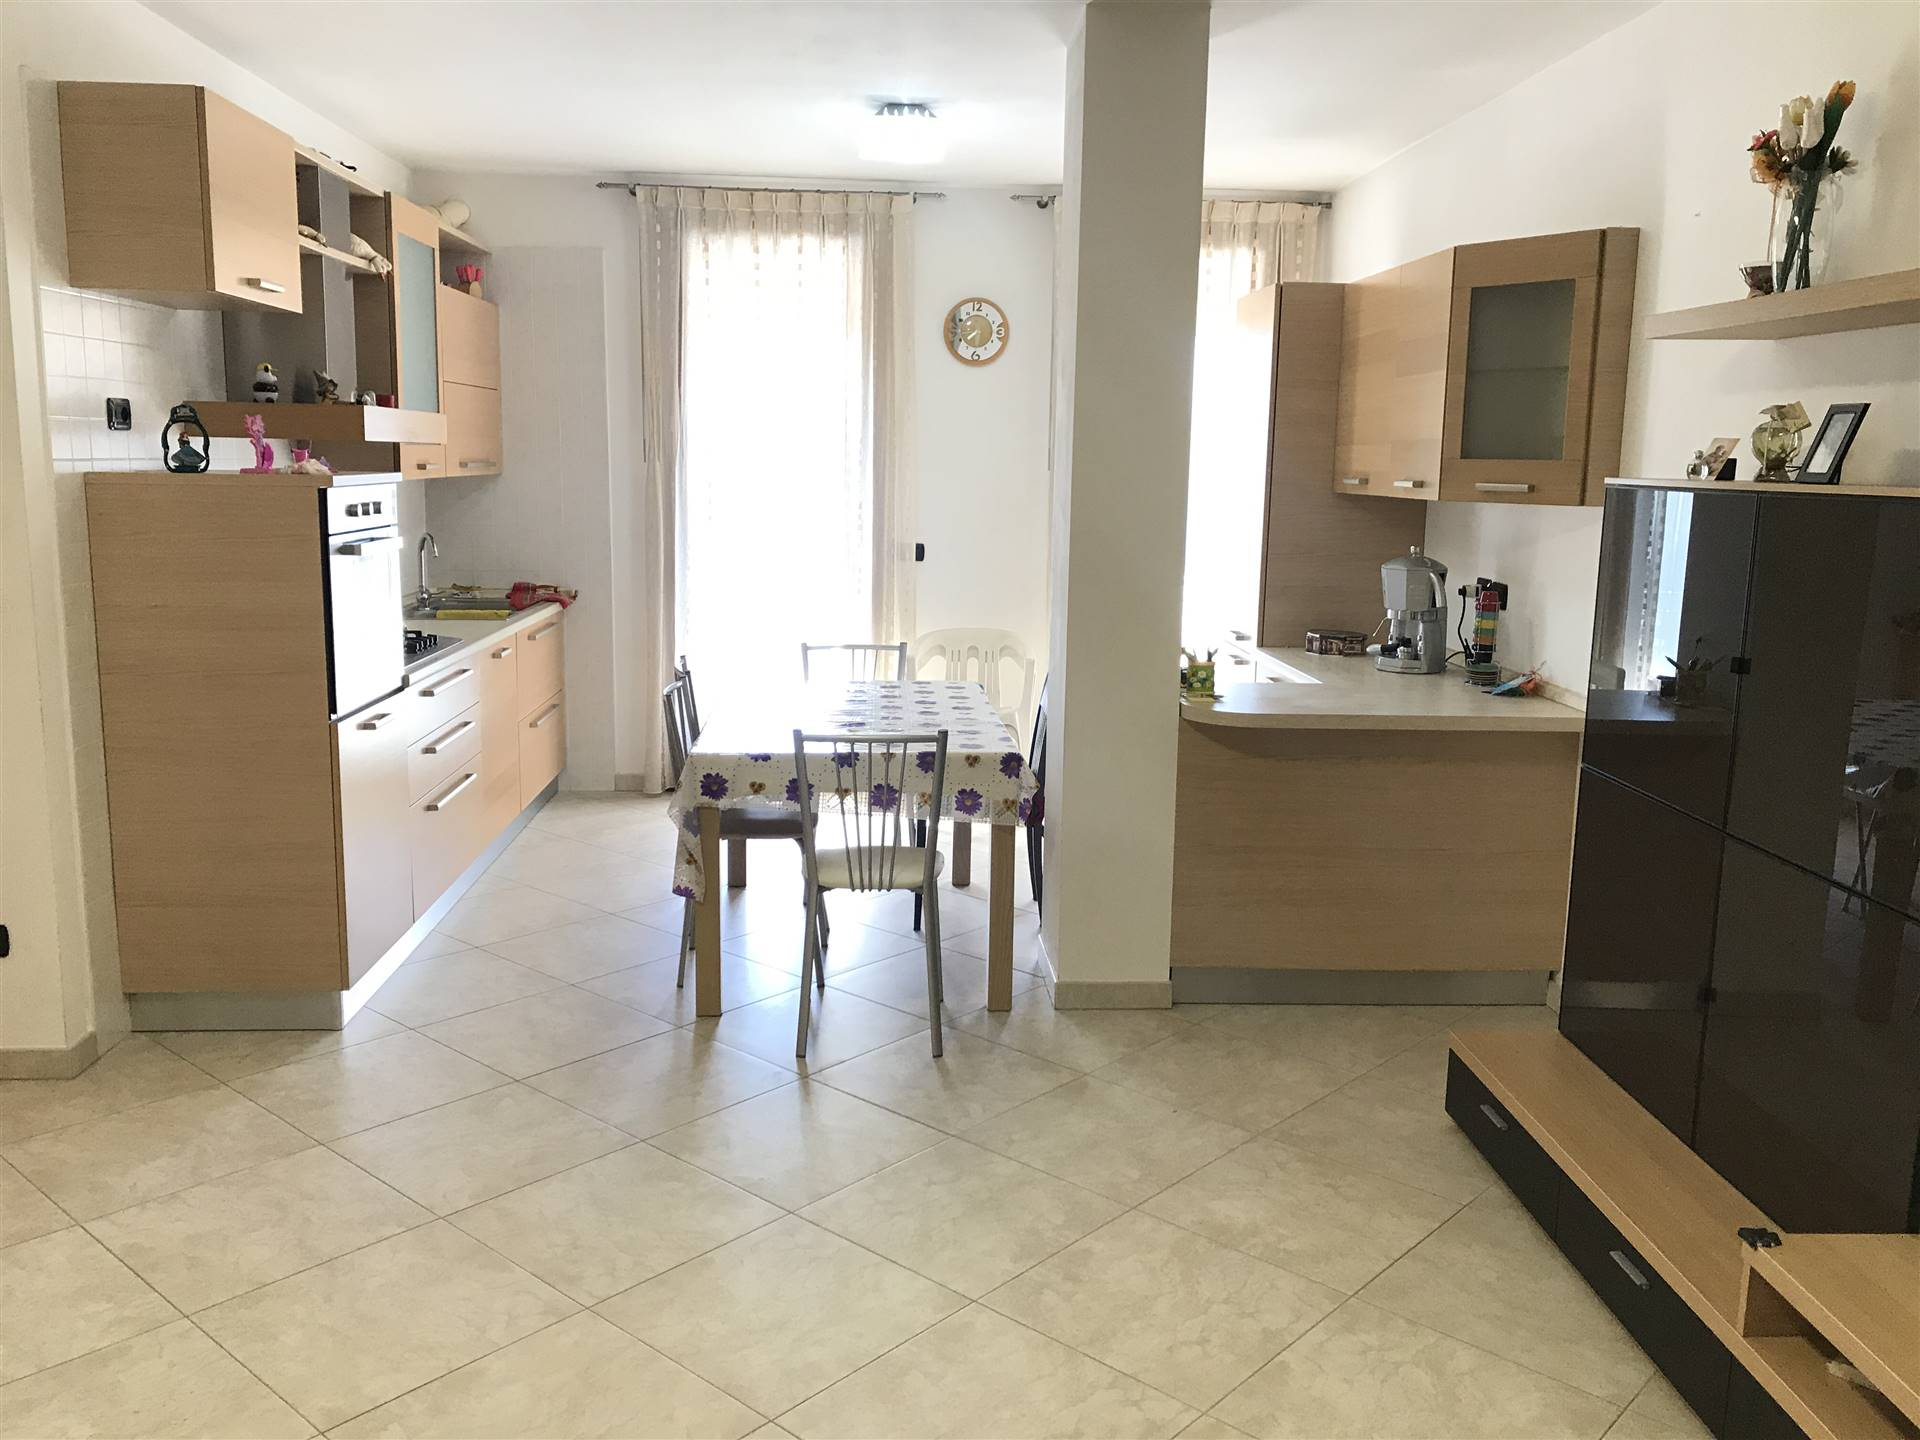 VALLI, CHIOGGIA, Apartment for sale of 75 Sq. mt., Good condition, Heating Individual heating system, Energetic class: G, placed at 1° on 2, composed